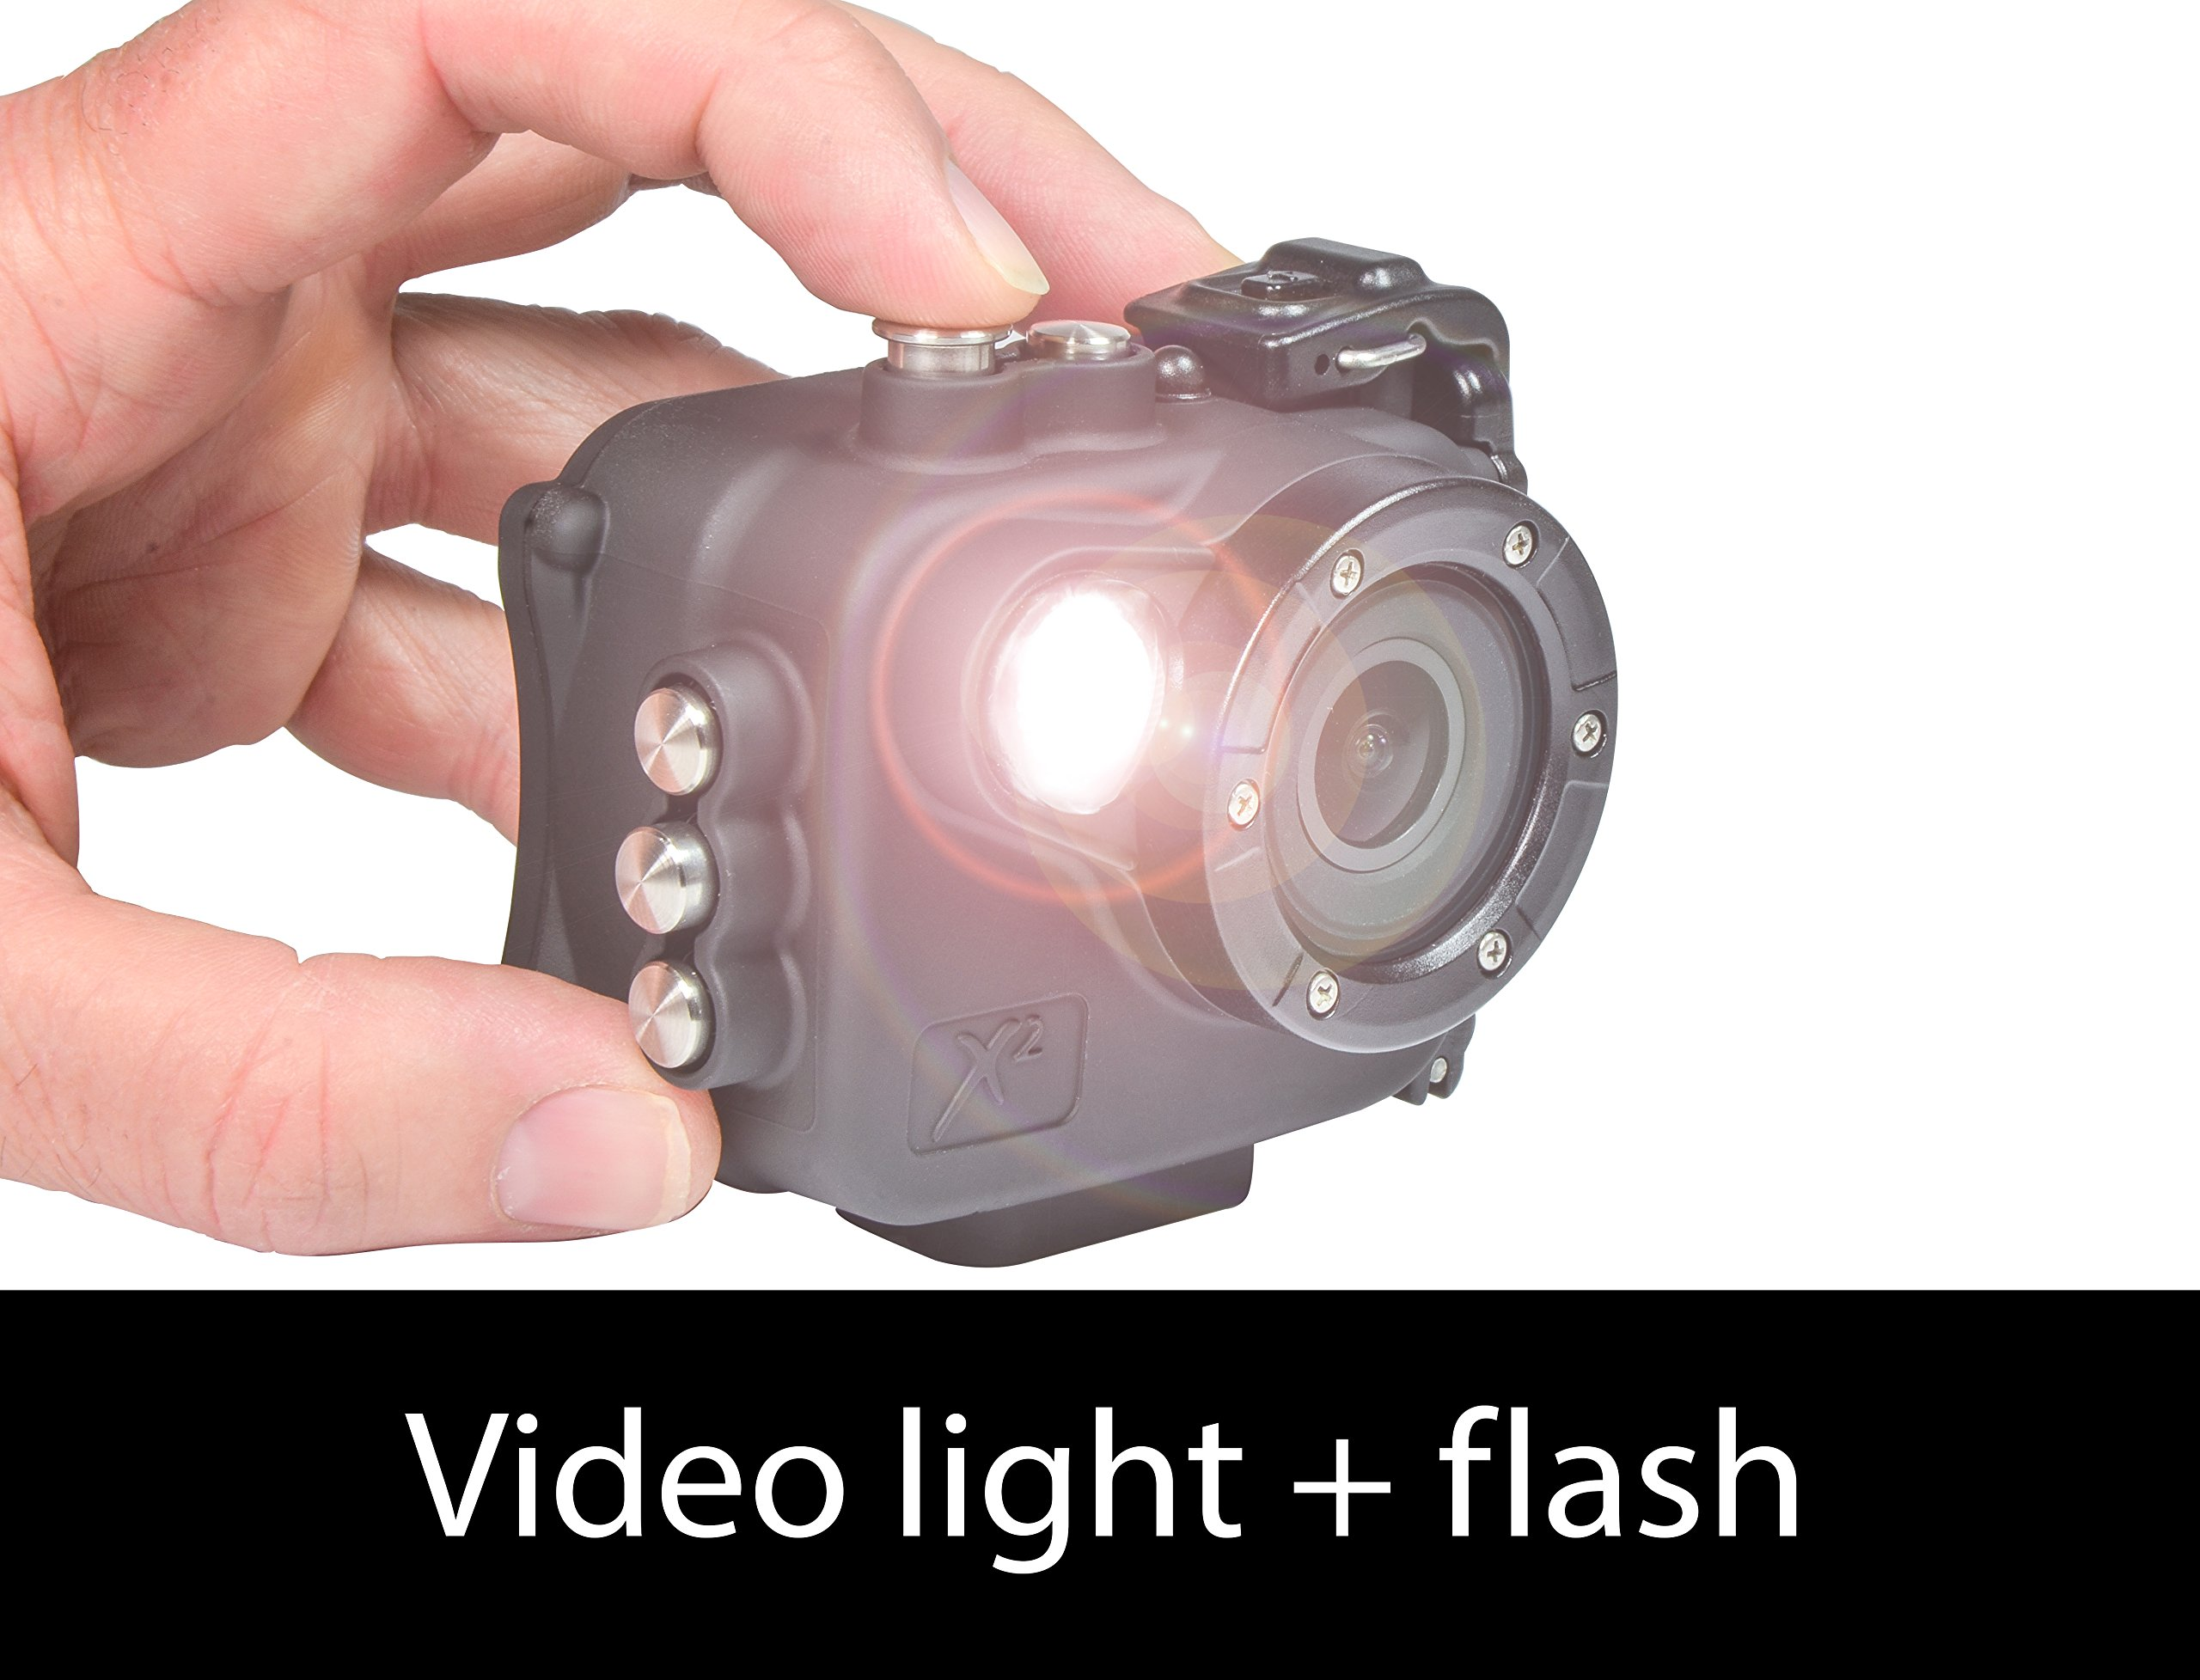 Intova X2 Waterproof 16MP Action Camera with Built-in 150-Lumen Light and WiFi by Intova (Image #4)